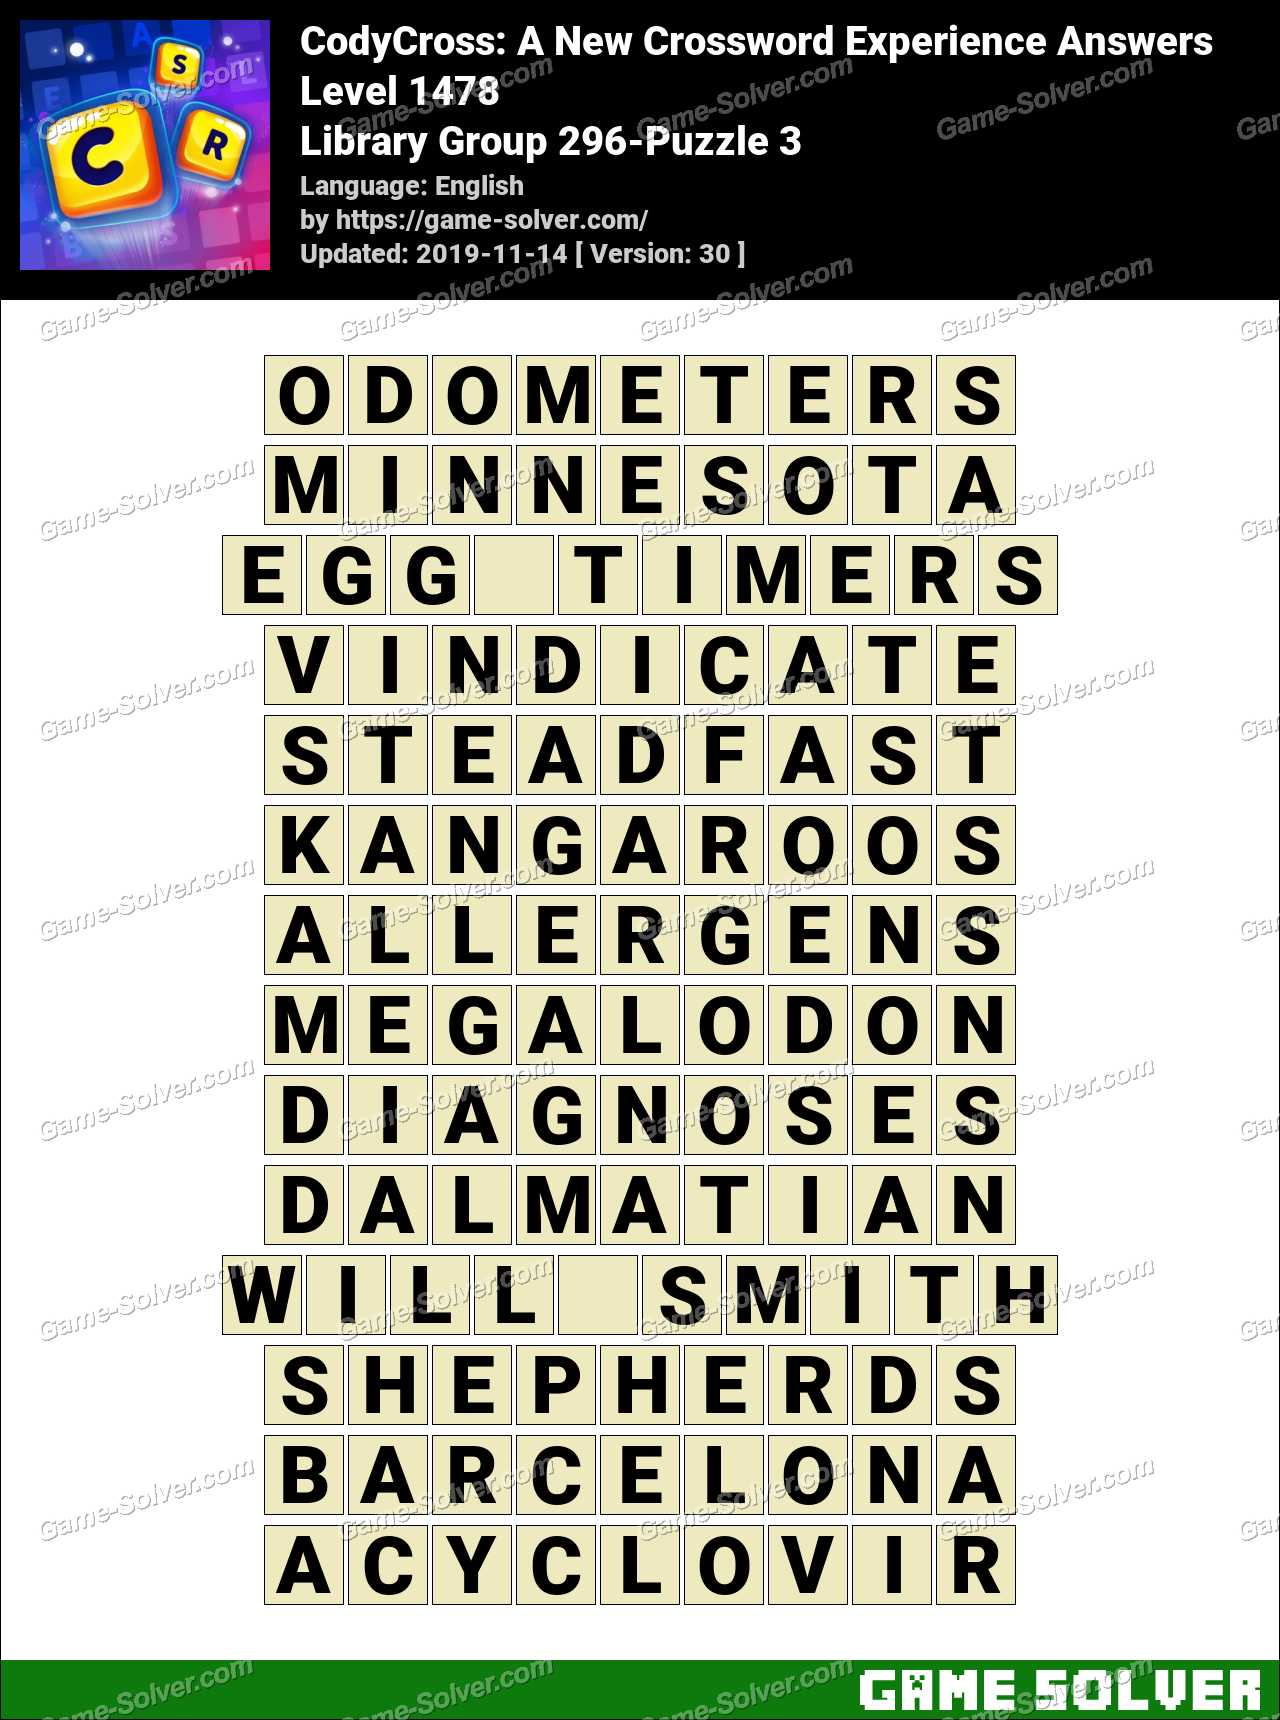 CodyCross Library Group 296-Puzzle 3 Answers